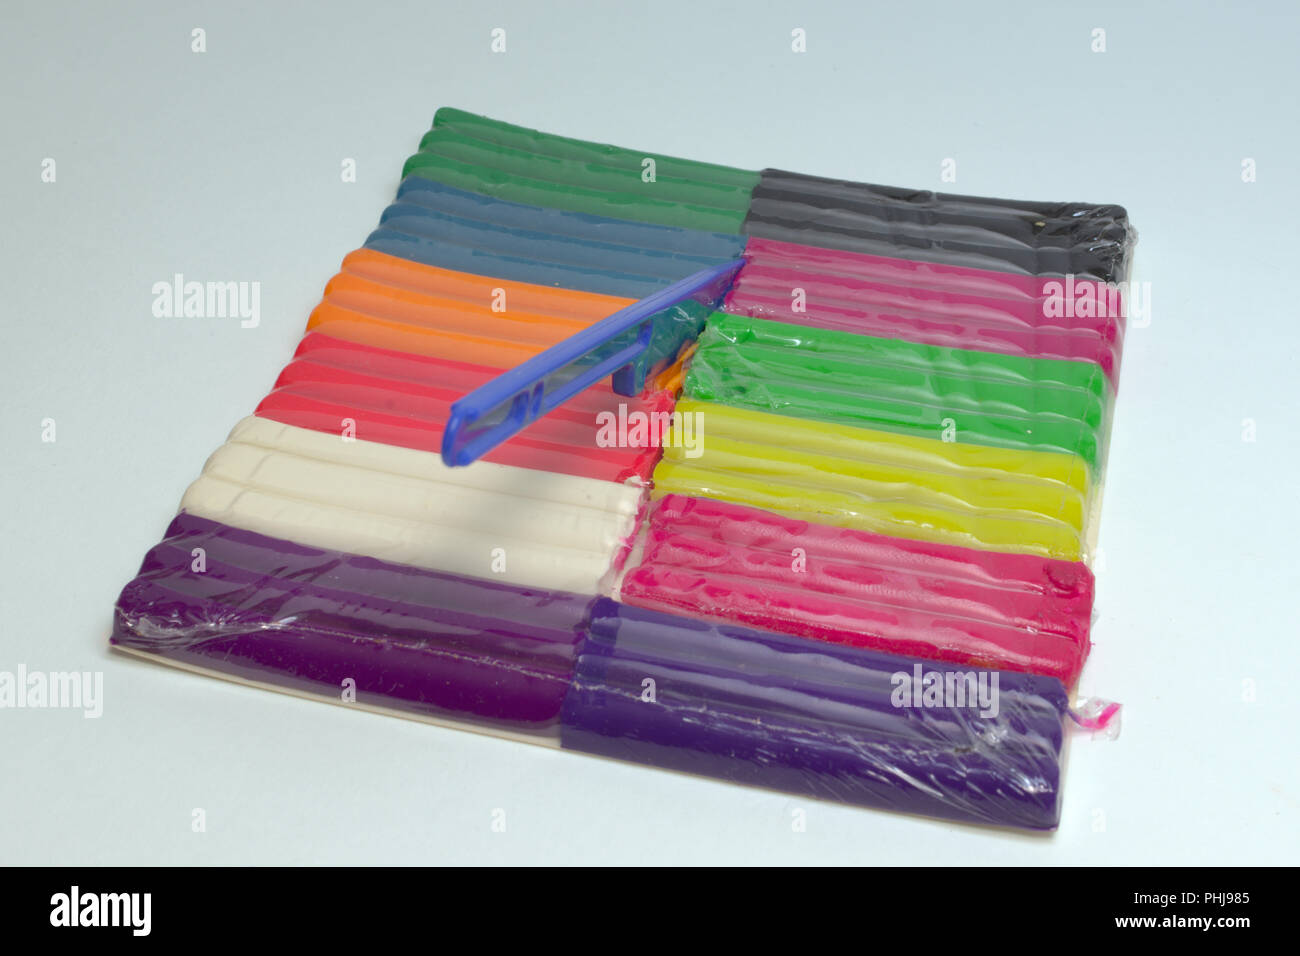 wax plasticine. multicolored set with modeling tool, with clipping path - Stock Image